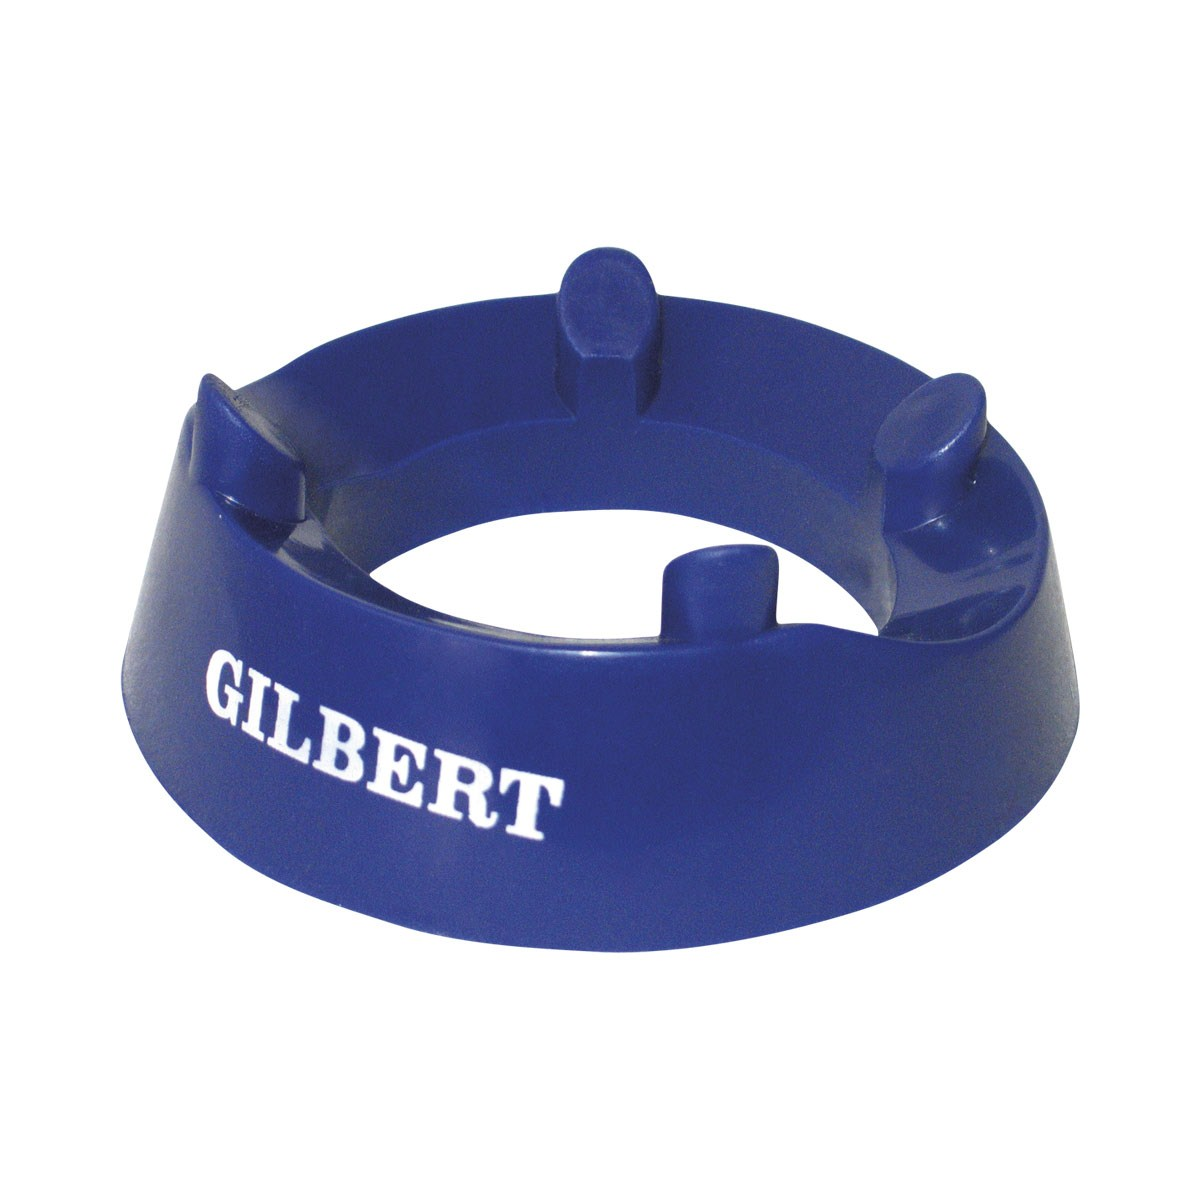 Gilbert 320 Kicking Tee: Gilbert Quicker Kicker 11